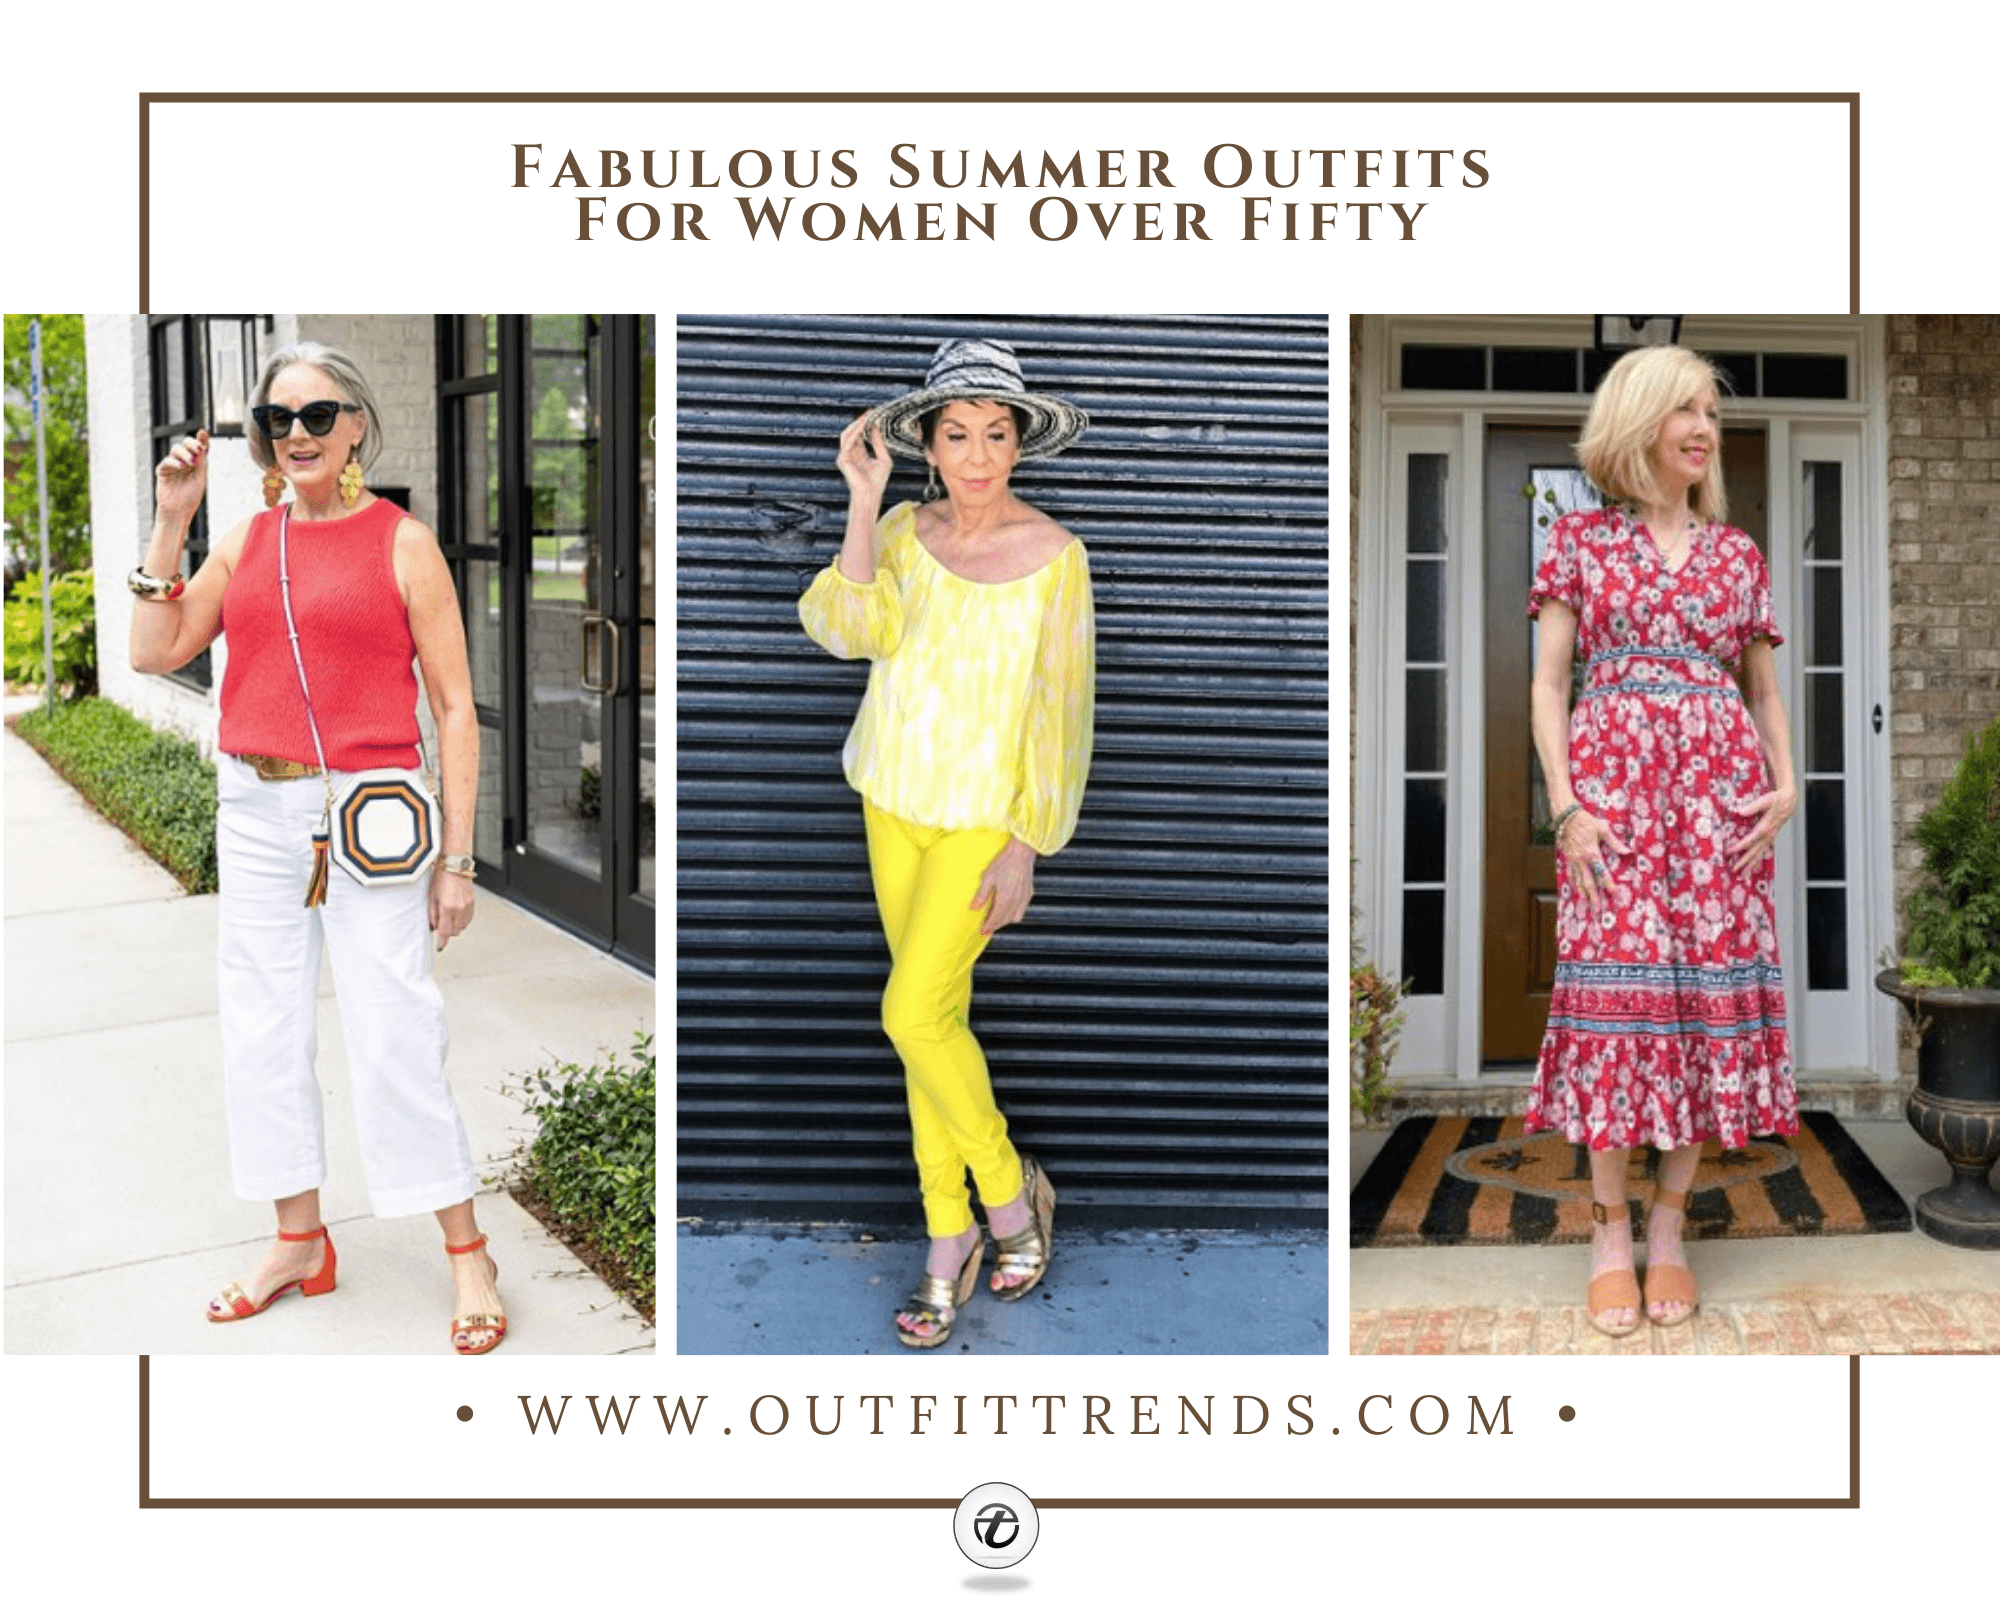 29 Best Summer Outfits for Women Over 50 With Styling Tips